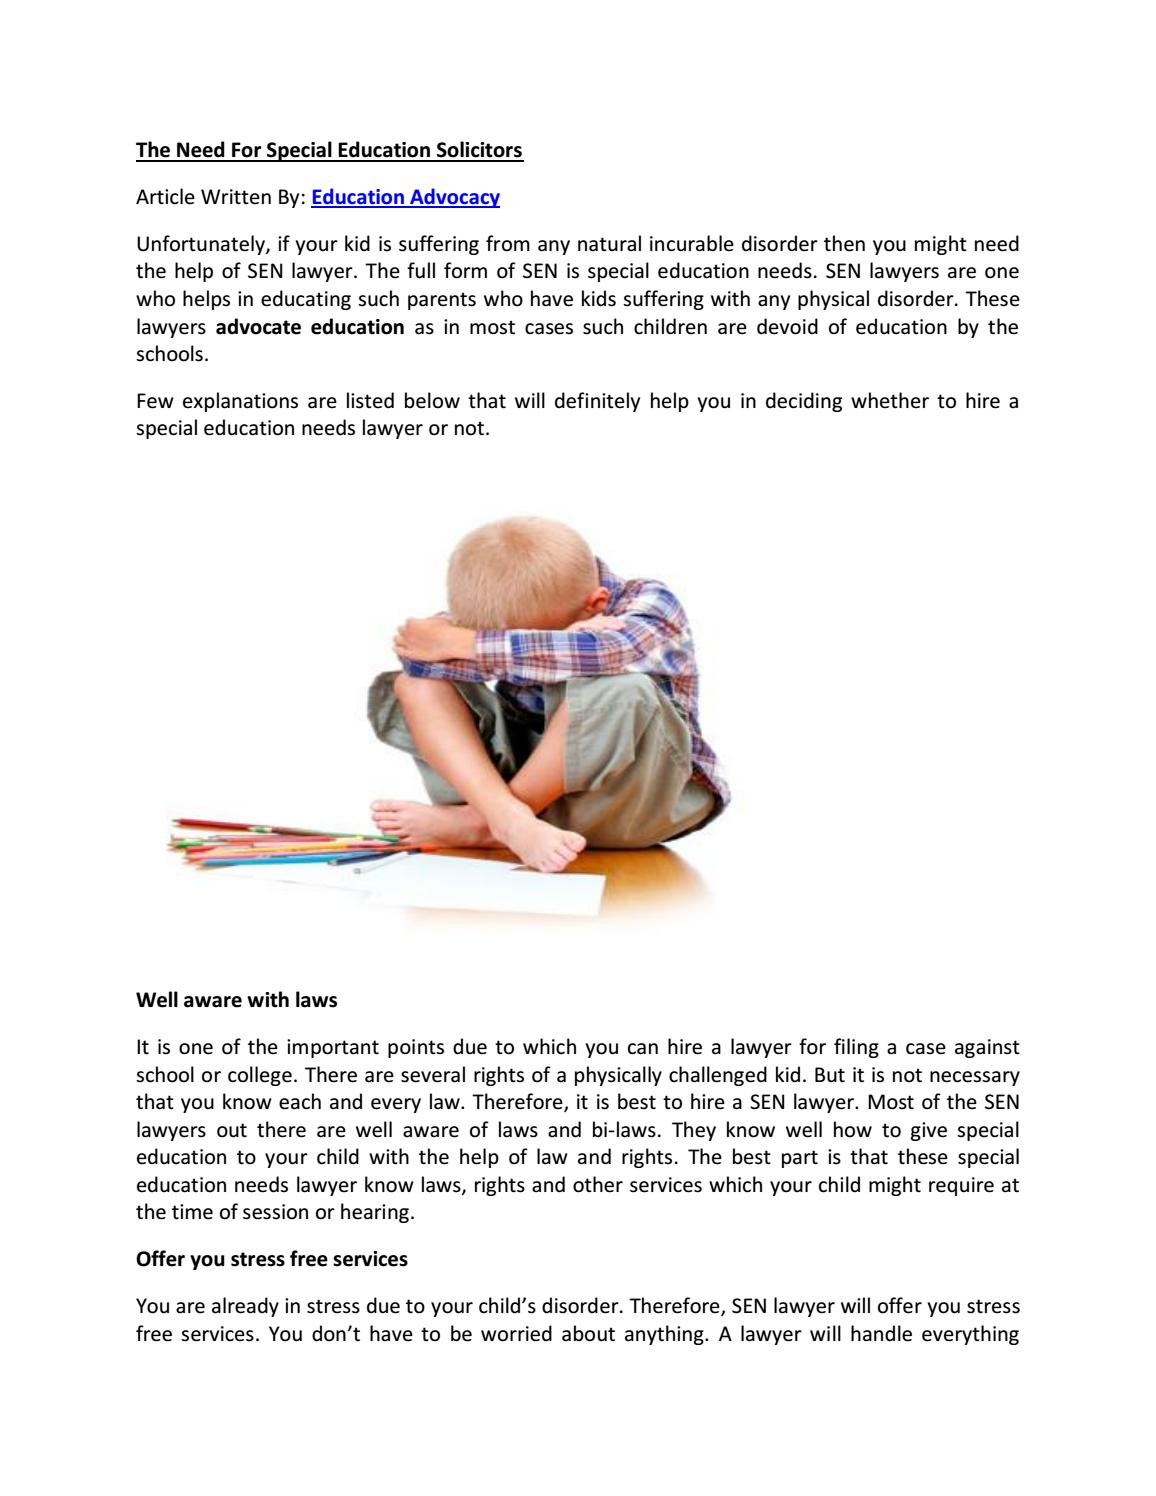 The Need For Special Education Solicitors By Advocacy UK Ltd